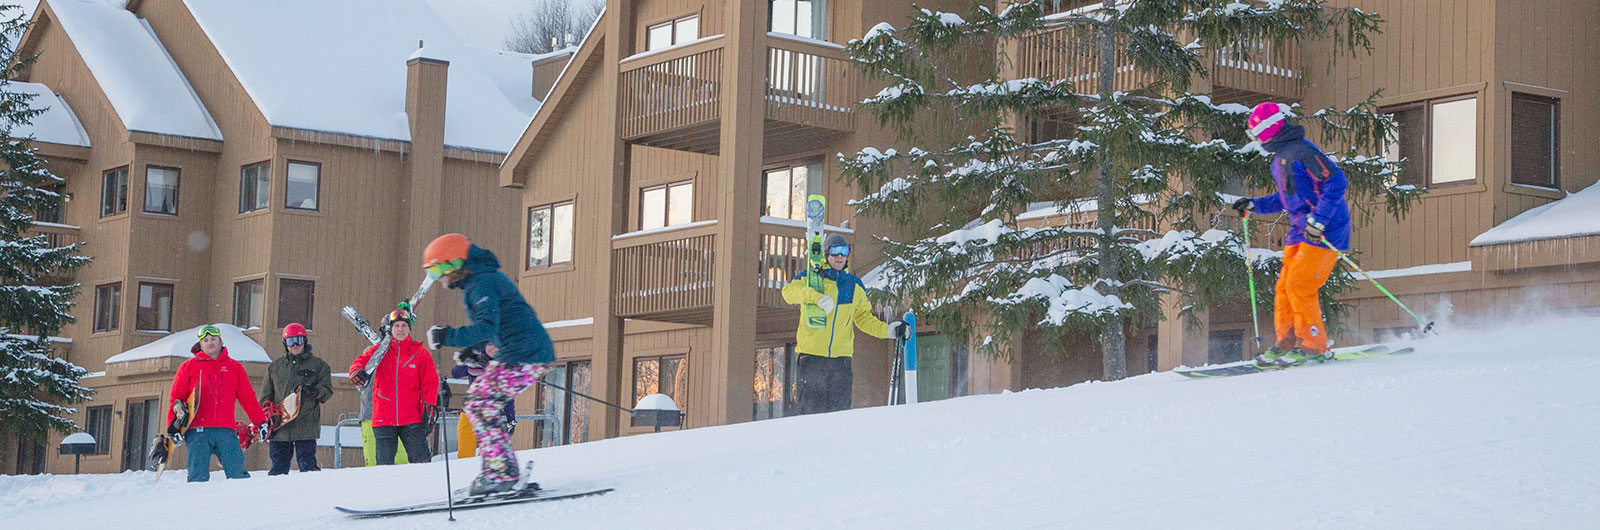 Skiers in front of SnowPine Village Condominiums